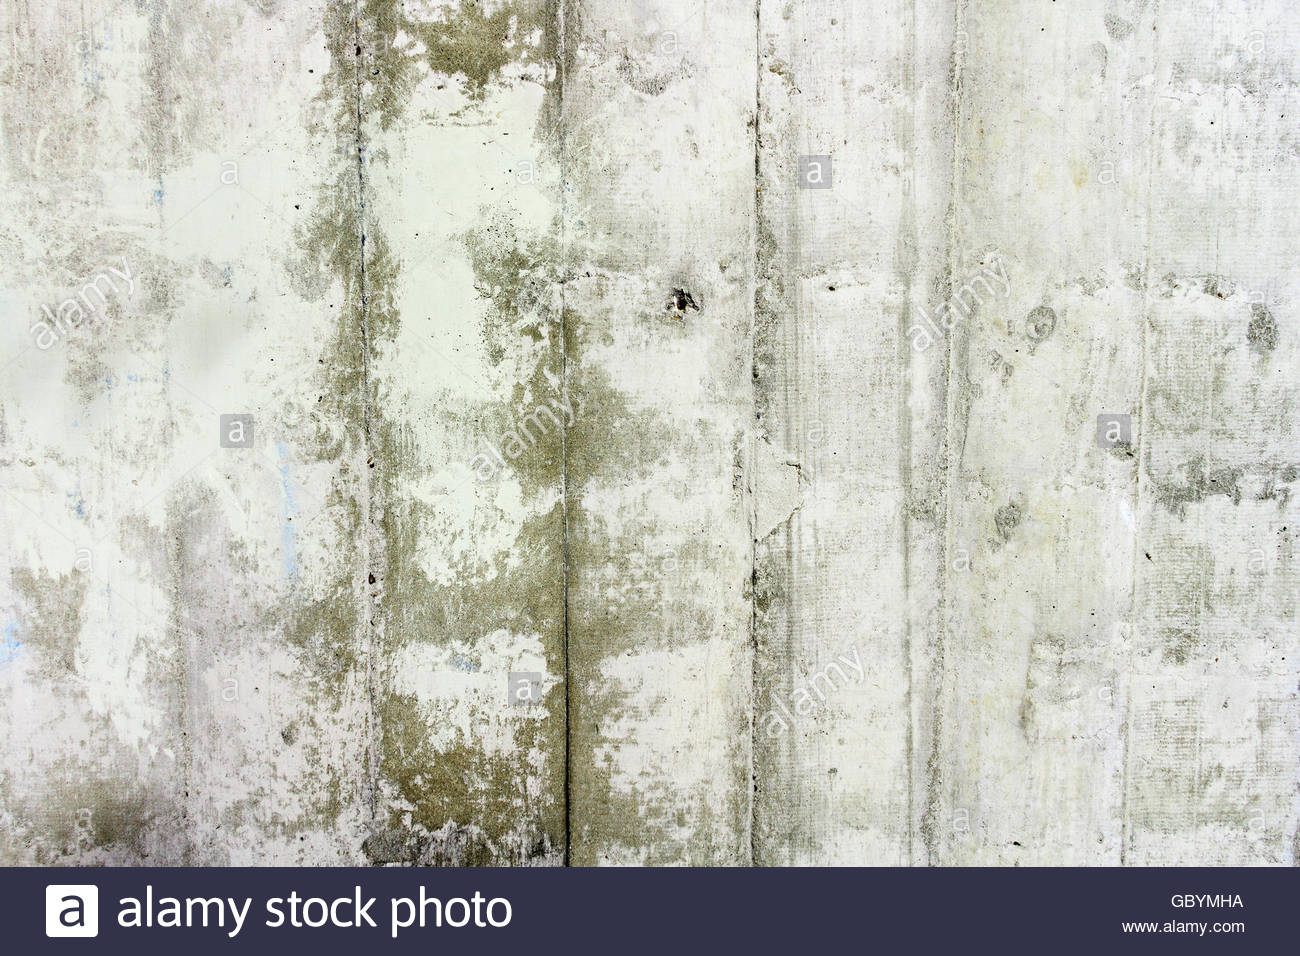 Concrete wall with little hole and humidity - Stock Image